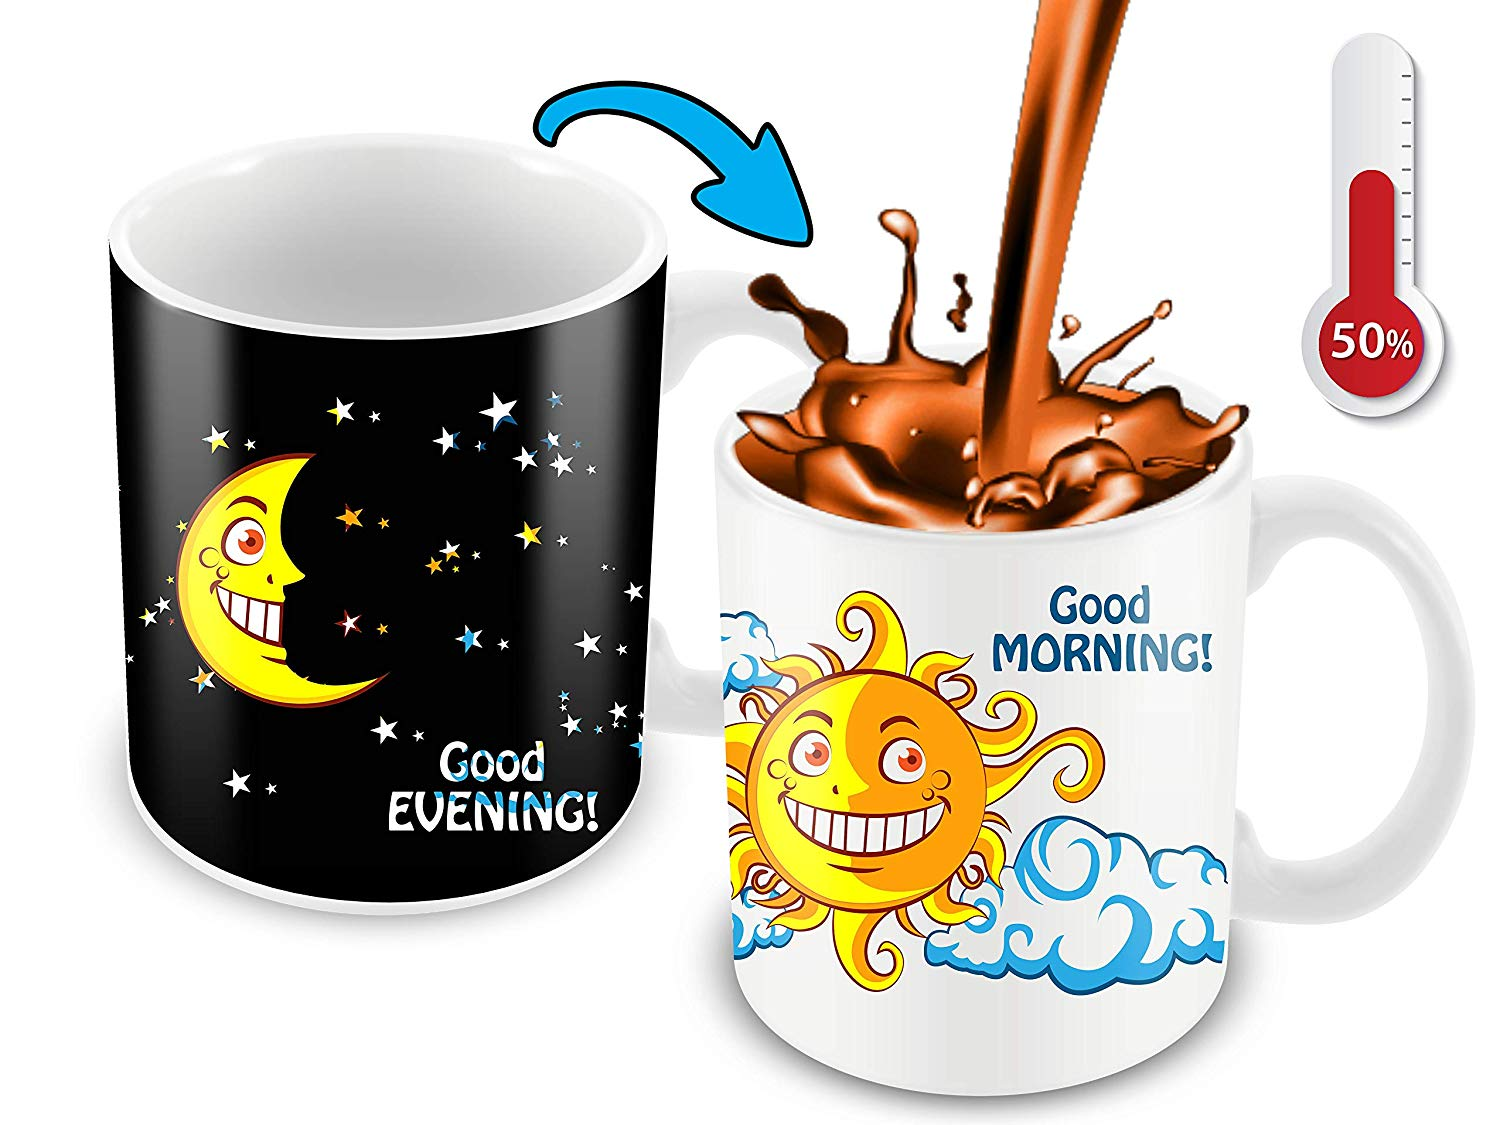 Funny coffee mug clipart clip royalty free library Heat Sensitive Color Changing Coffee Mug   Funny Coffee Cup   Night/Day,  Moon/Sun Design   Funny Gift Idea clip royalty free library